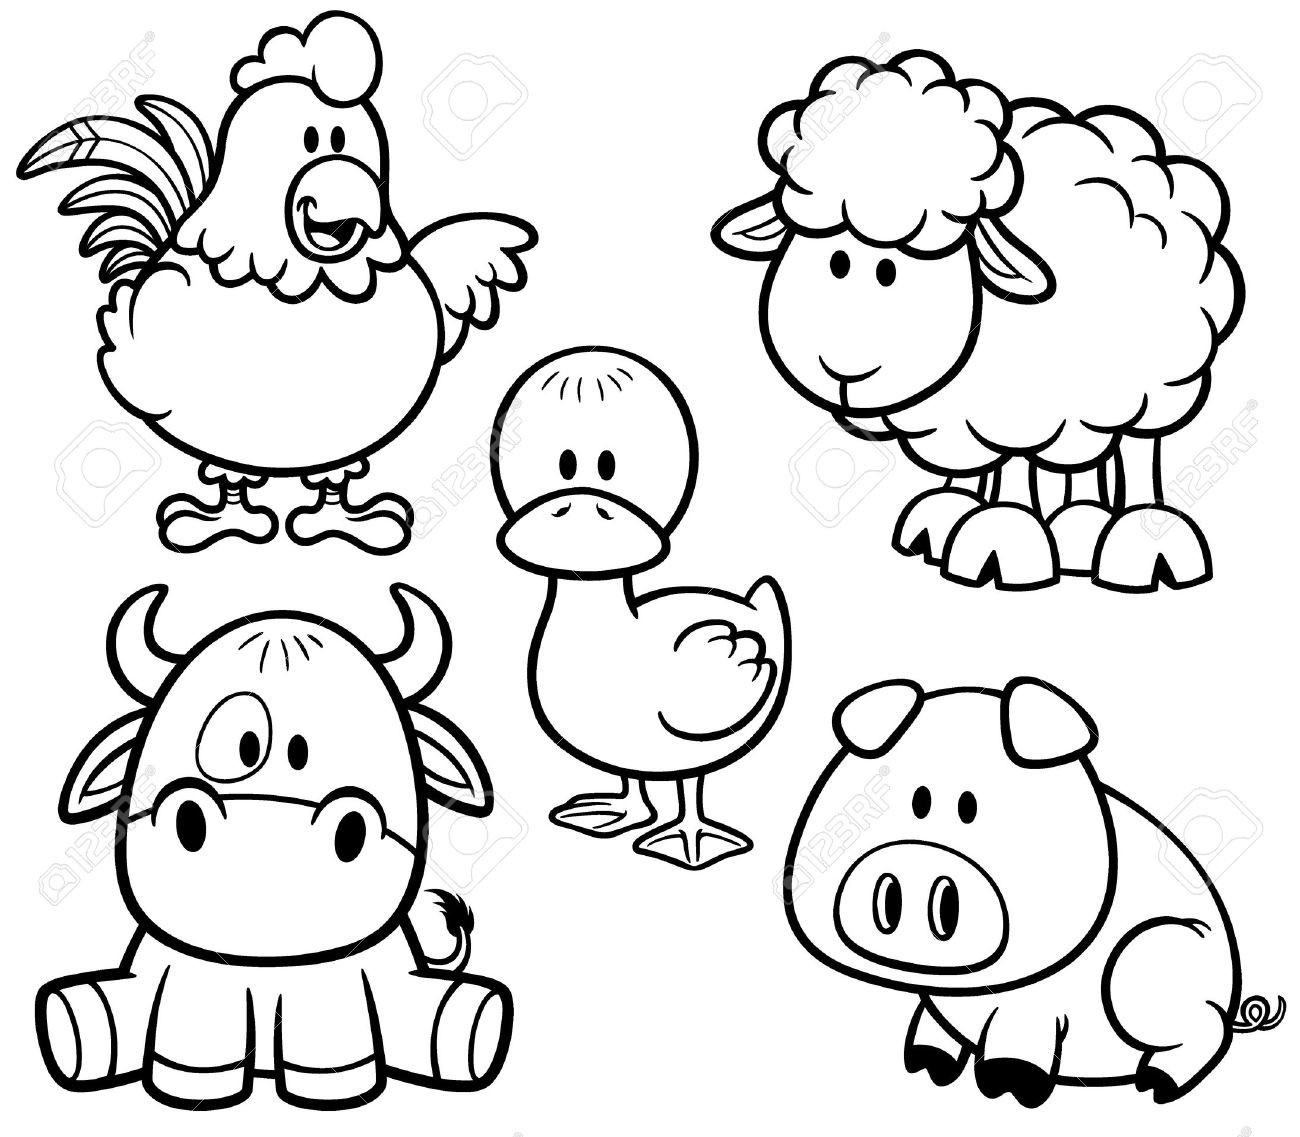 Coloring Pages Farm Animals  Cute Baby Farm Animal Coloring Pages Best Coloring Pages